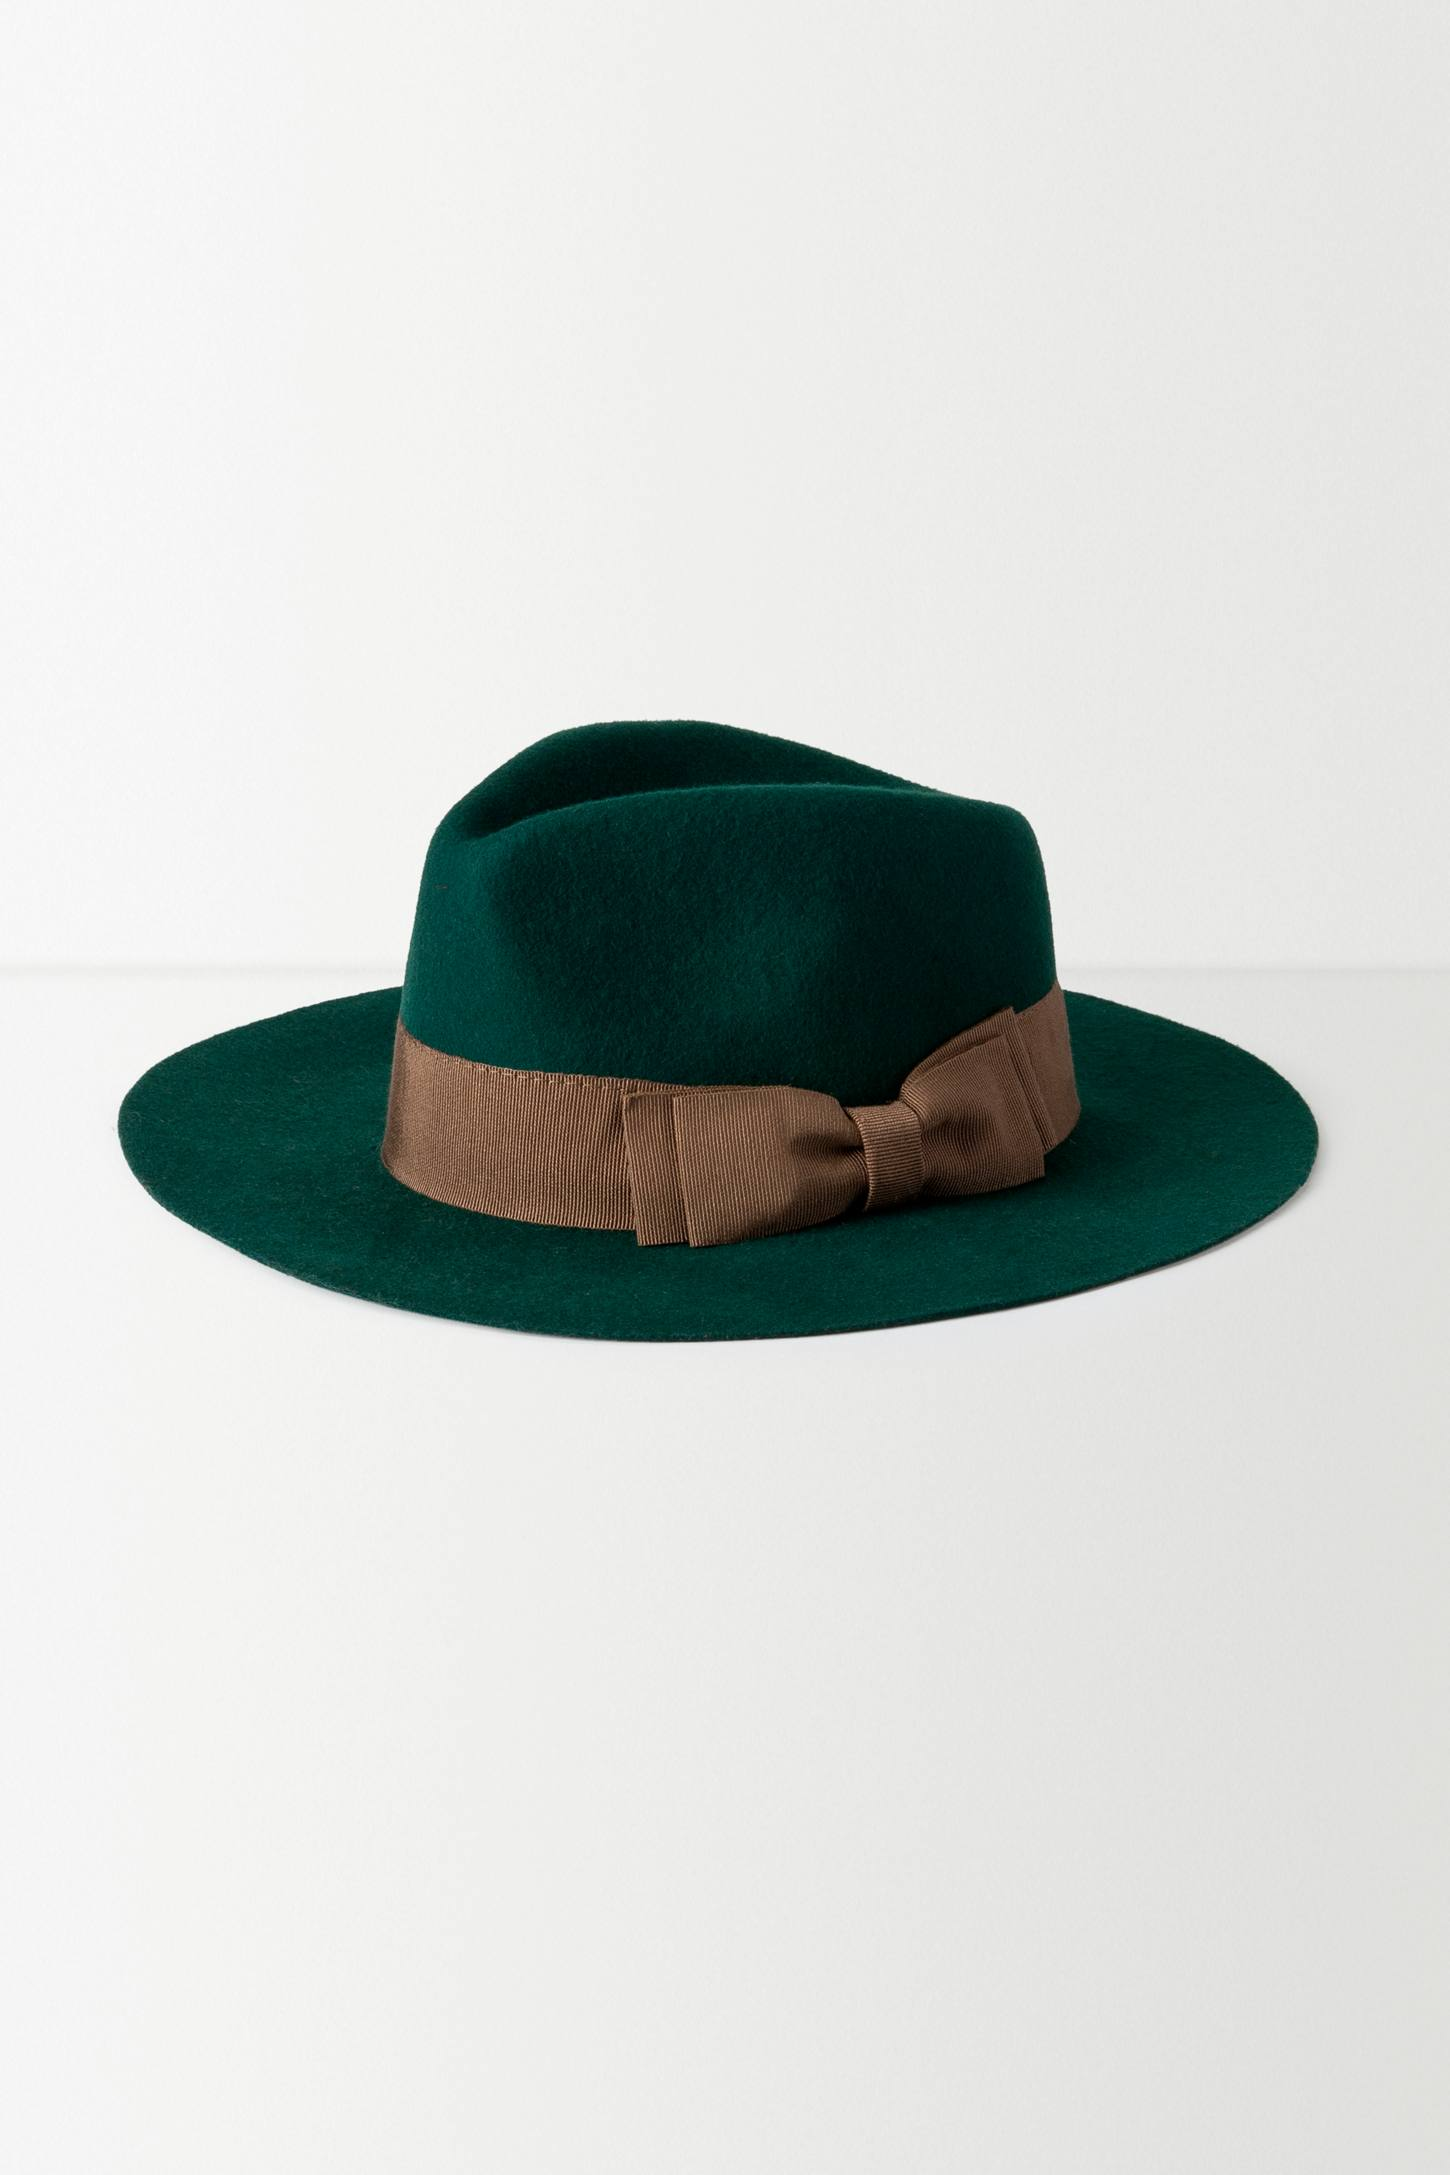 Chapeau - Anthropologie